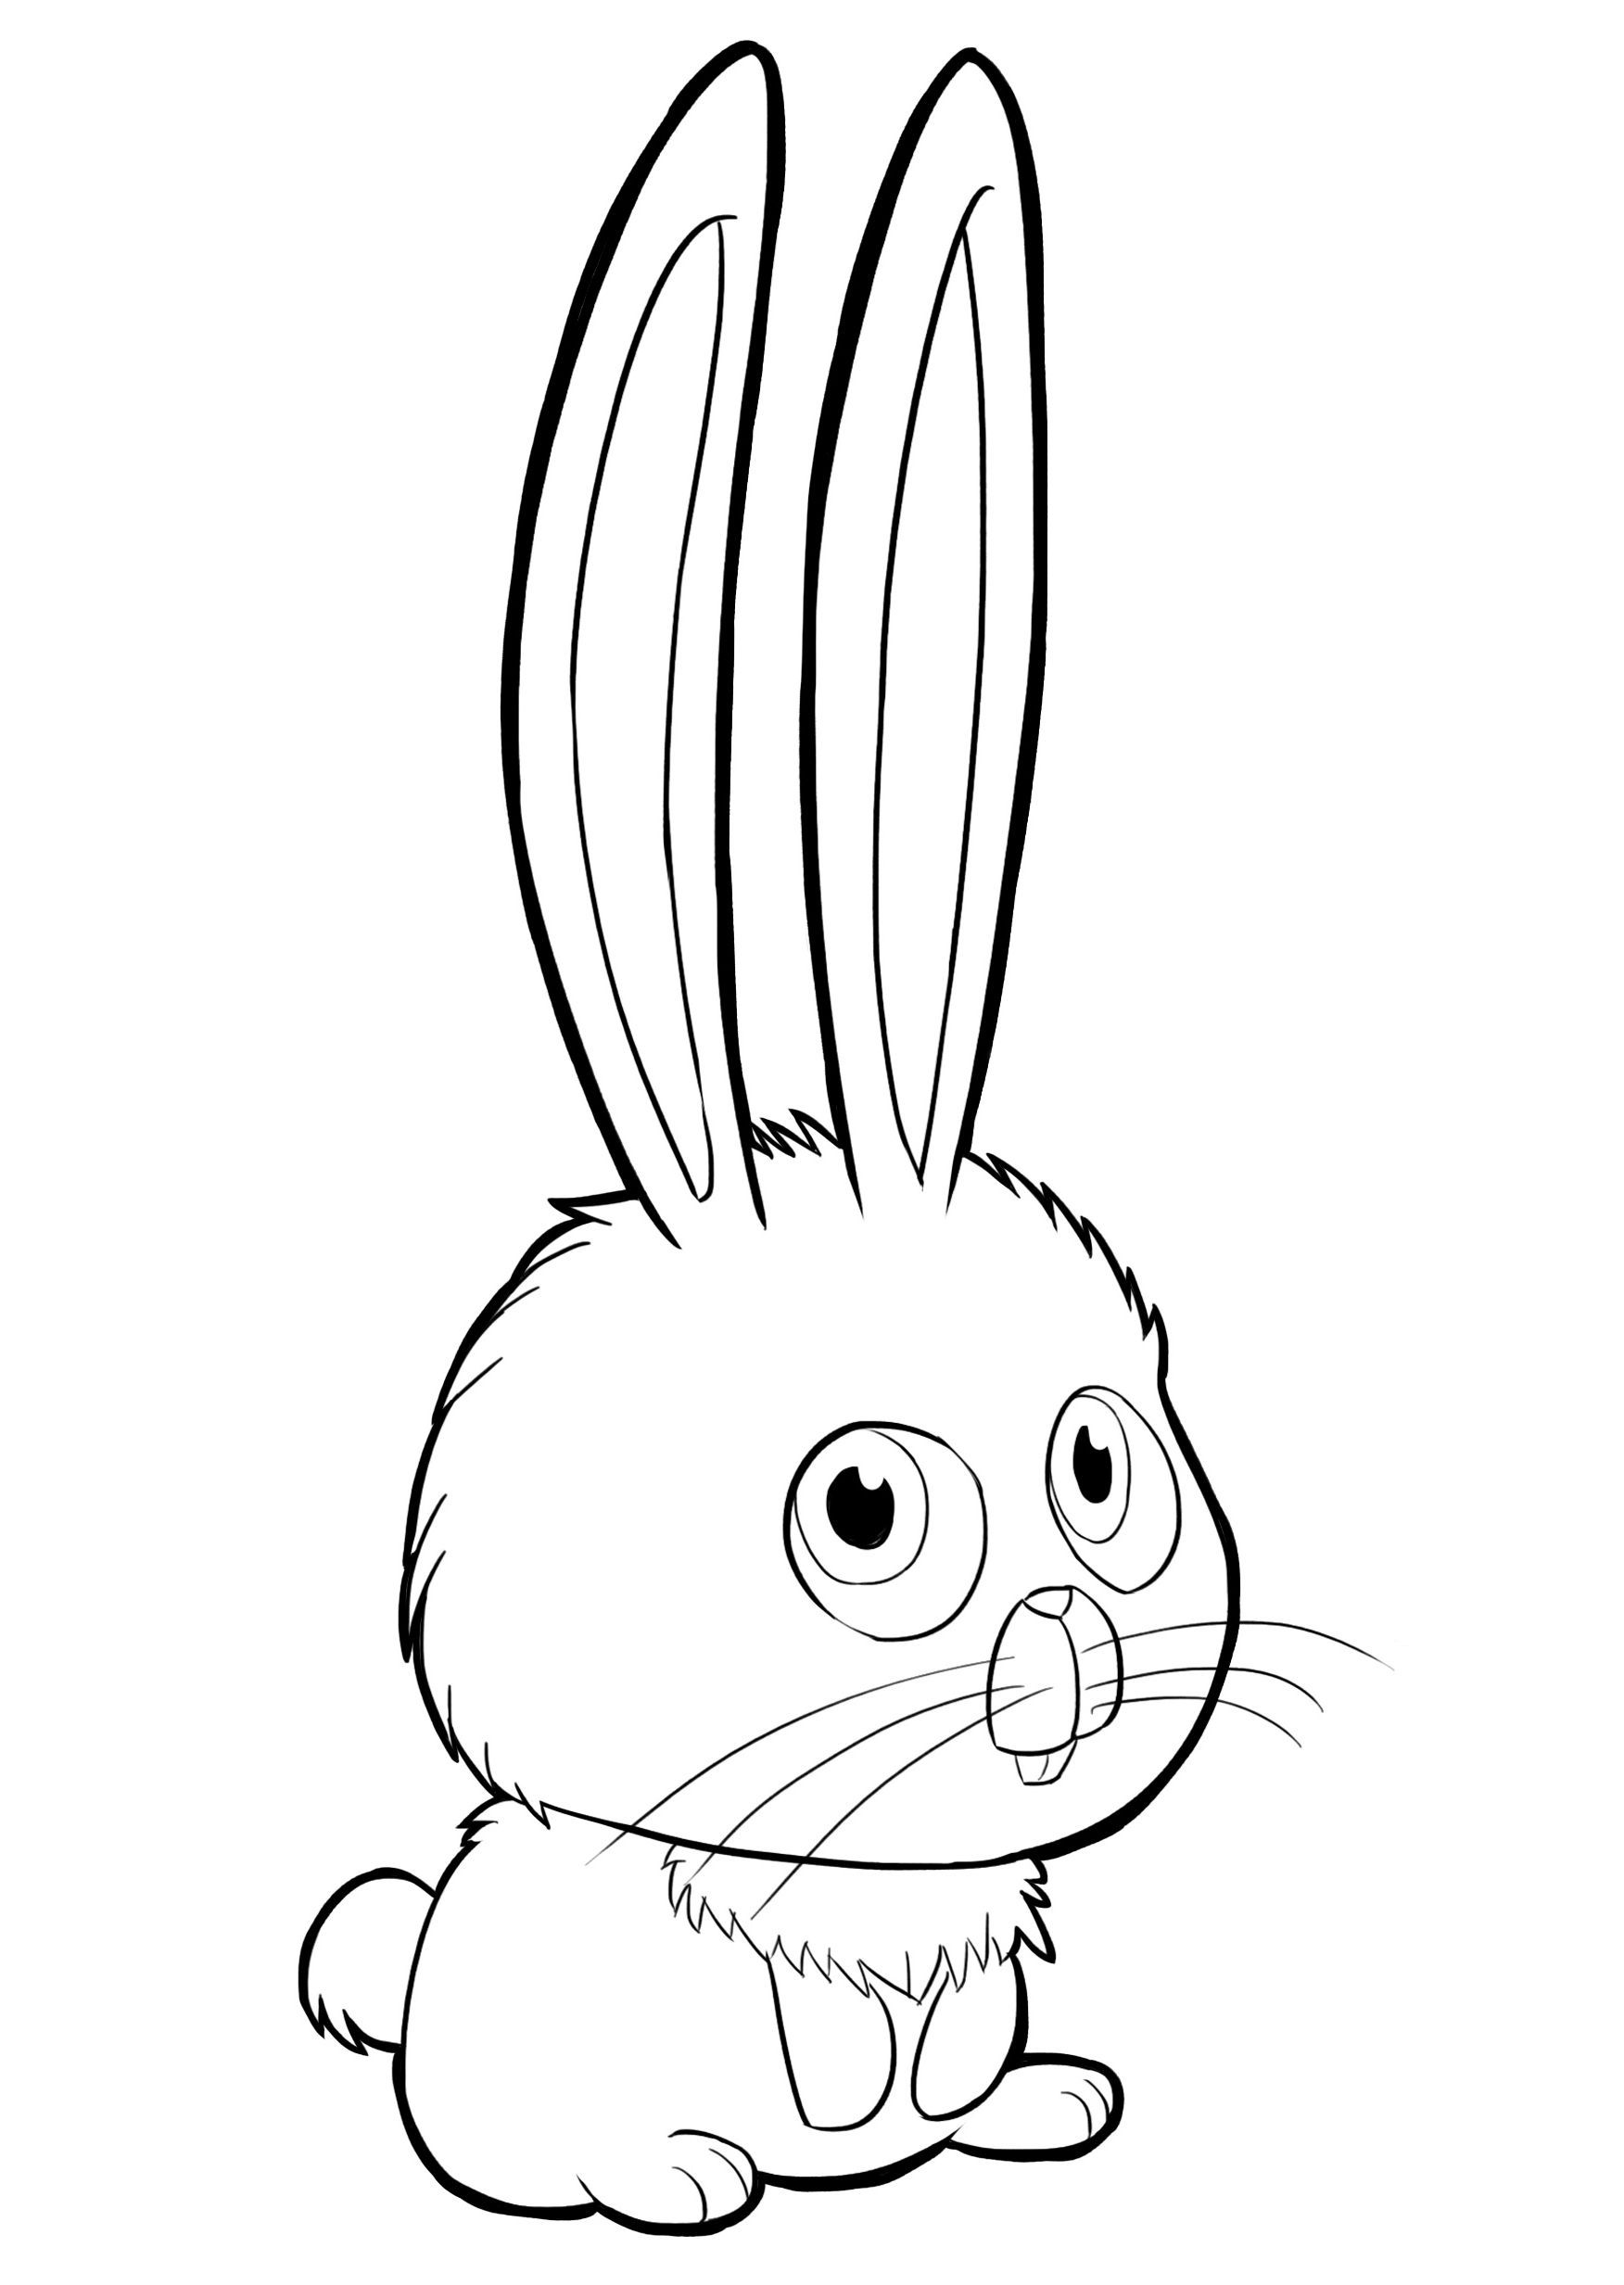 50+ Coloring page secret life of pets free download